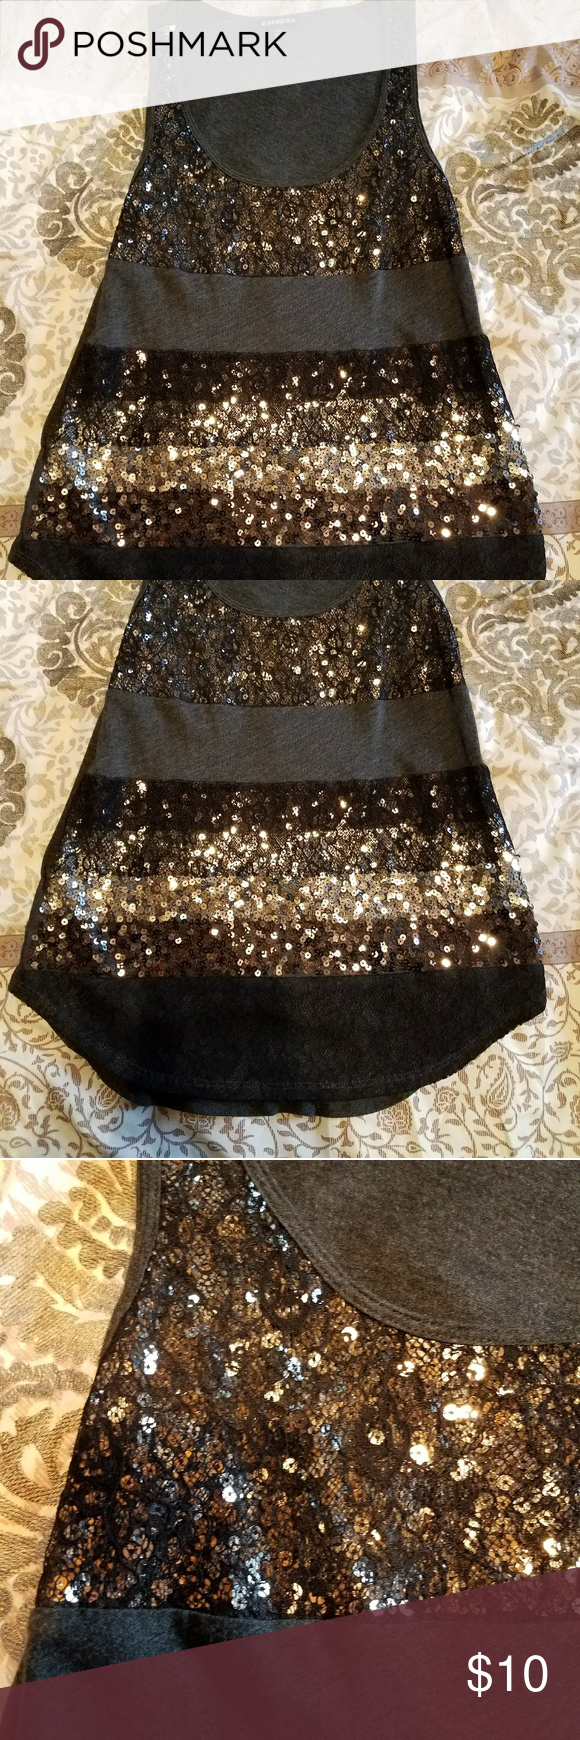 Express tank top EUC, worn twice under a black cardigan. Beautiful detail, lace and sequins. Express Tops Tank Tops